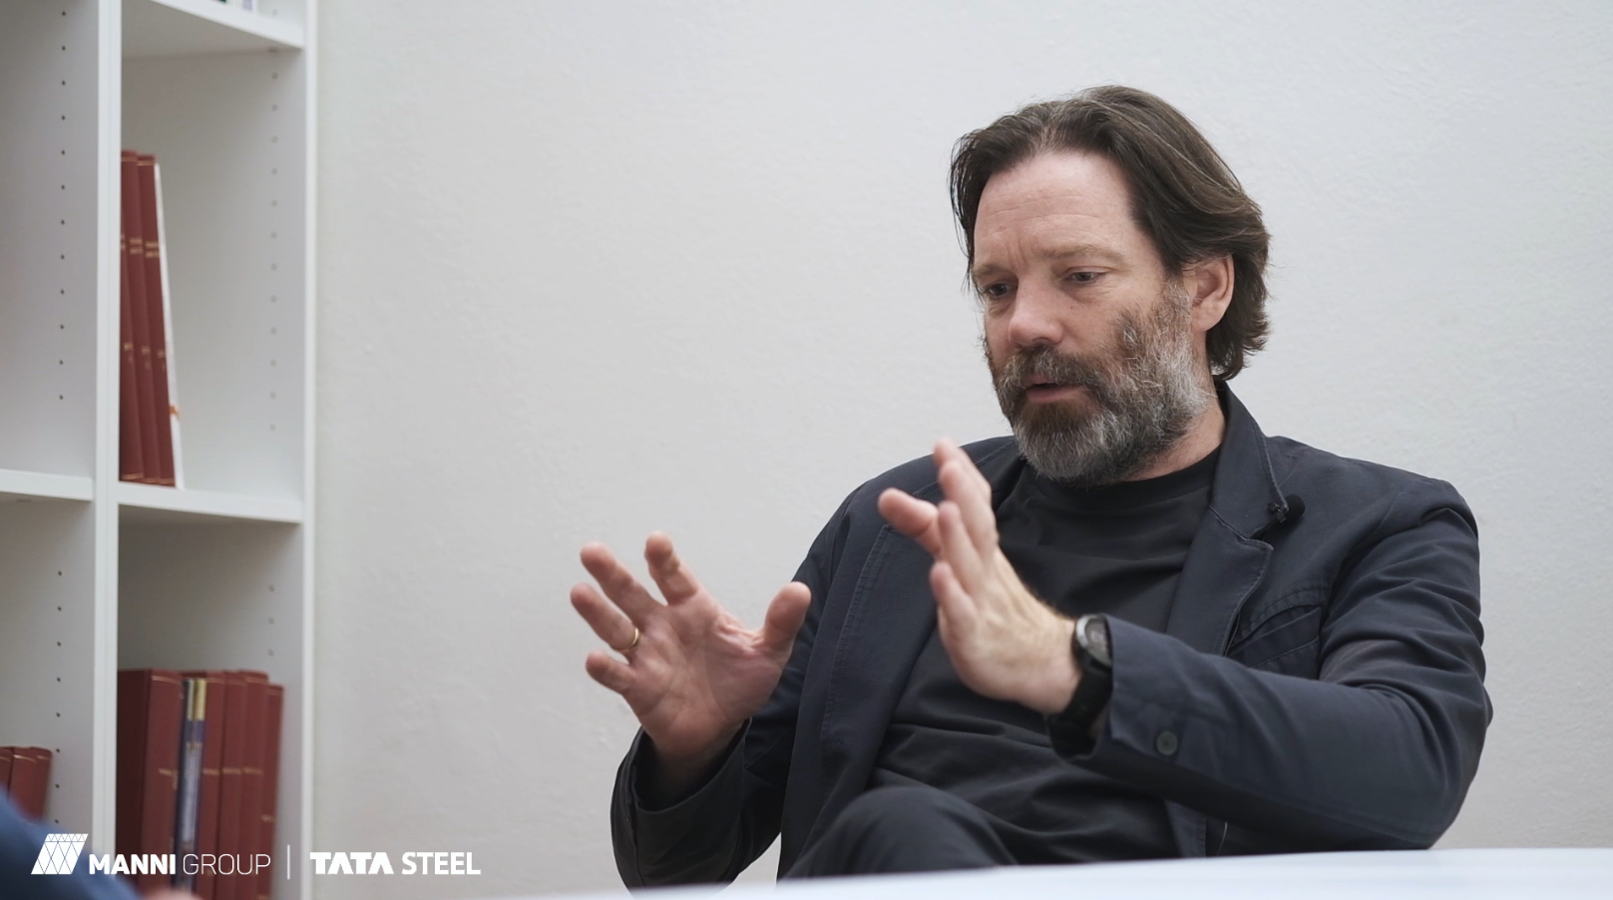 Architectural Talks | Manni Group incontra Patrick Luth di Snohetta